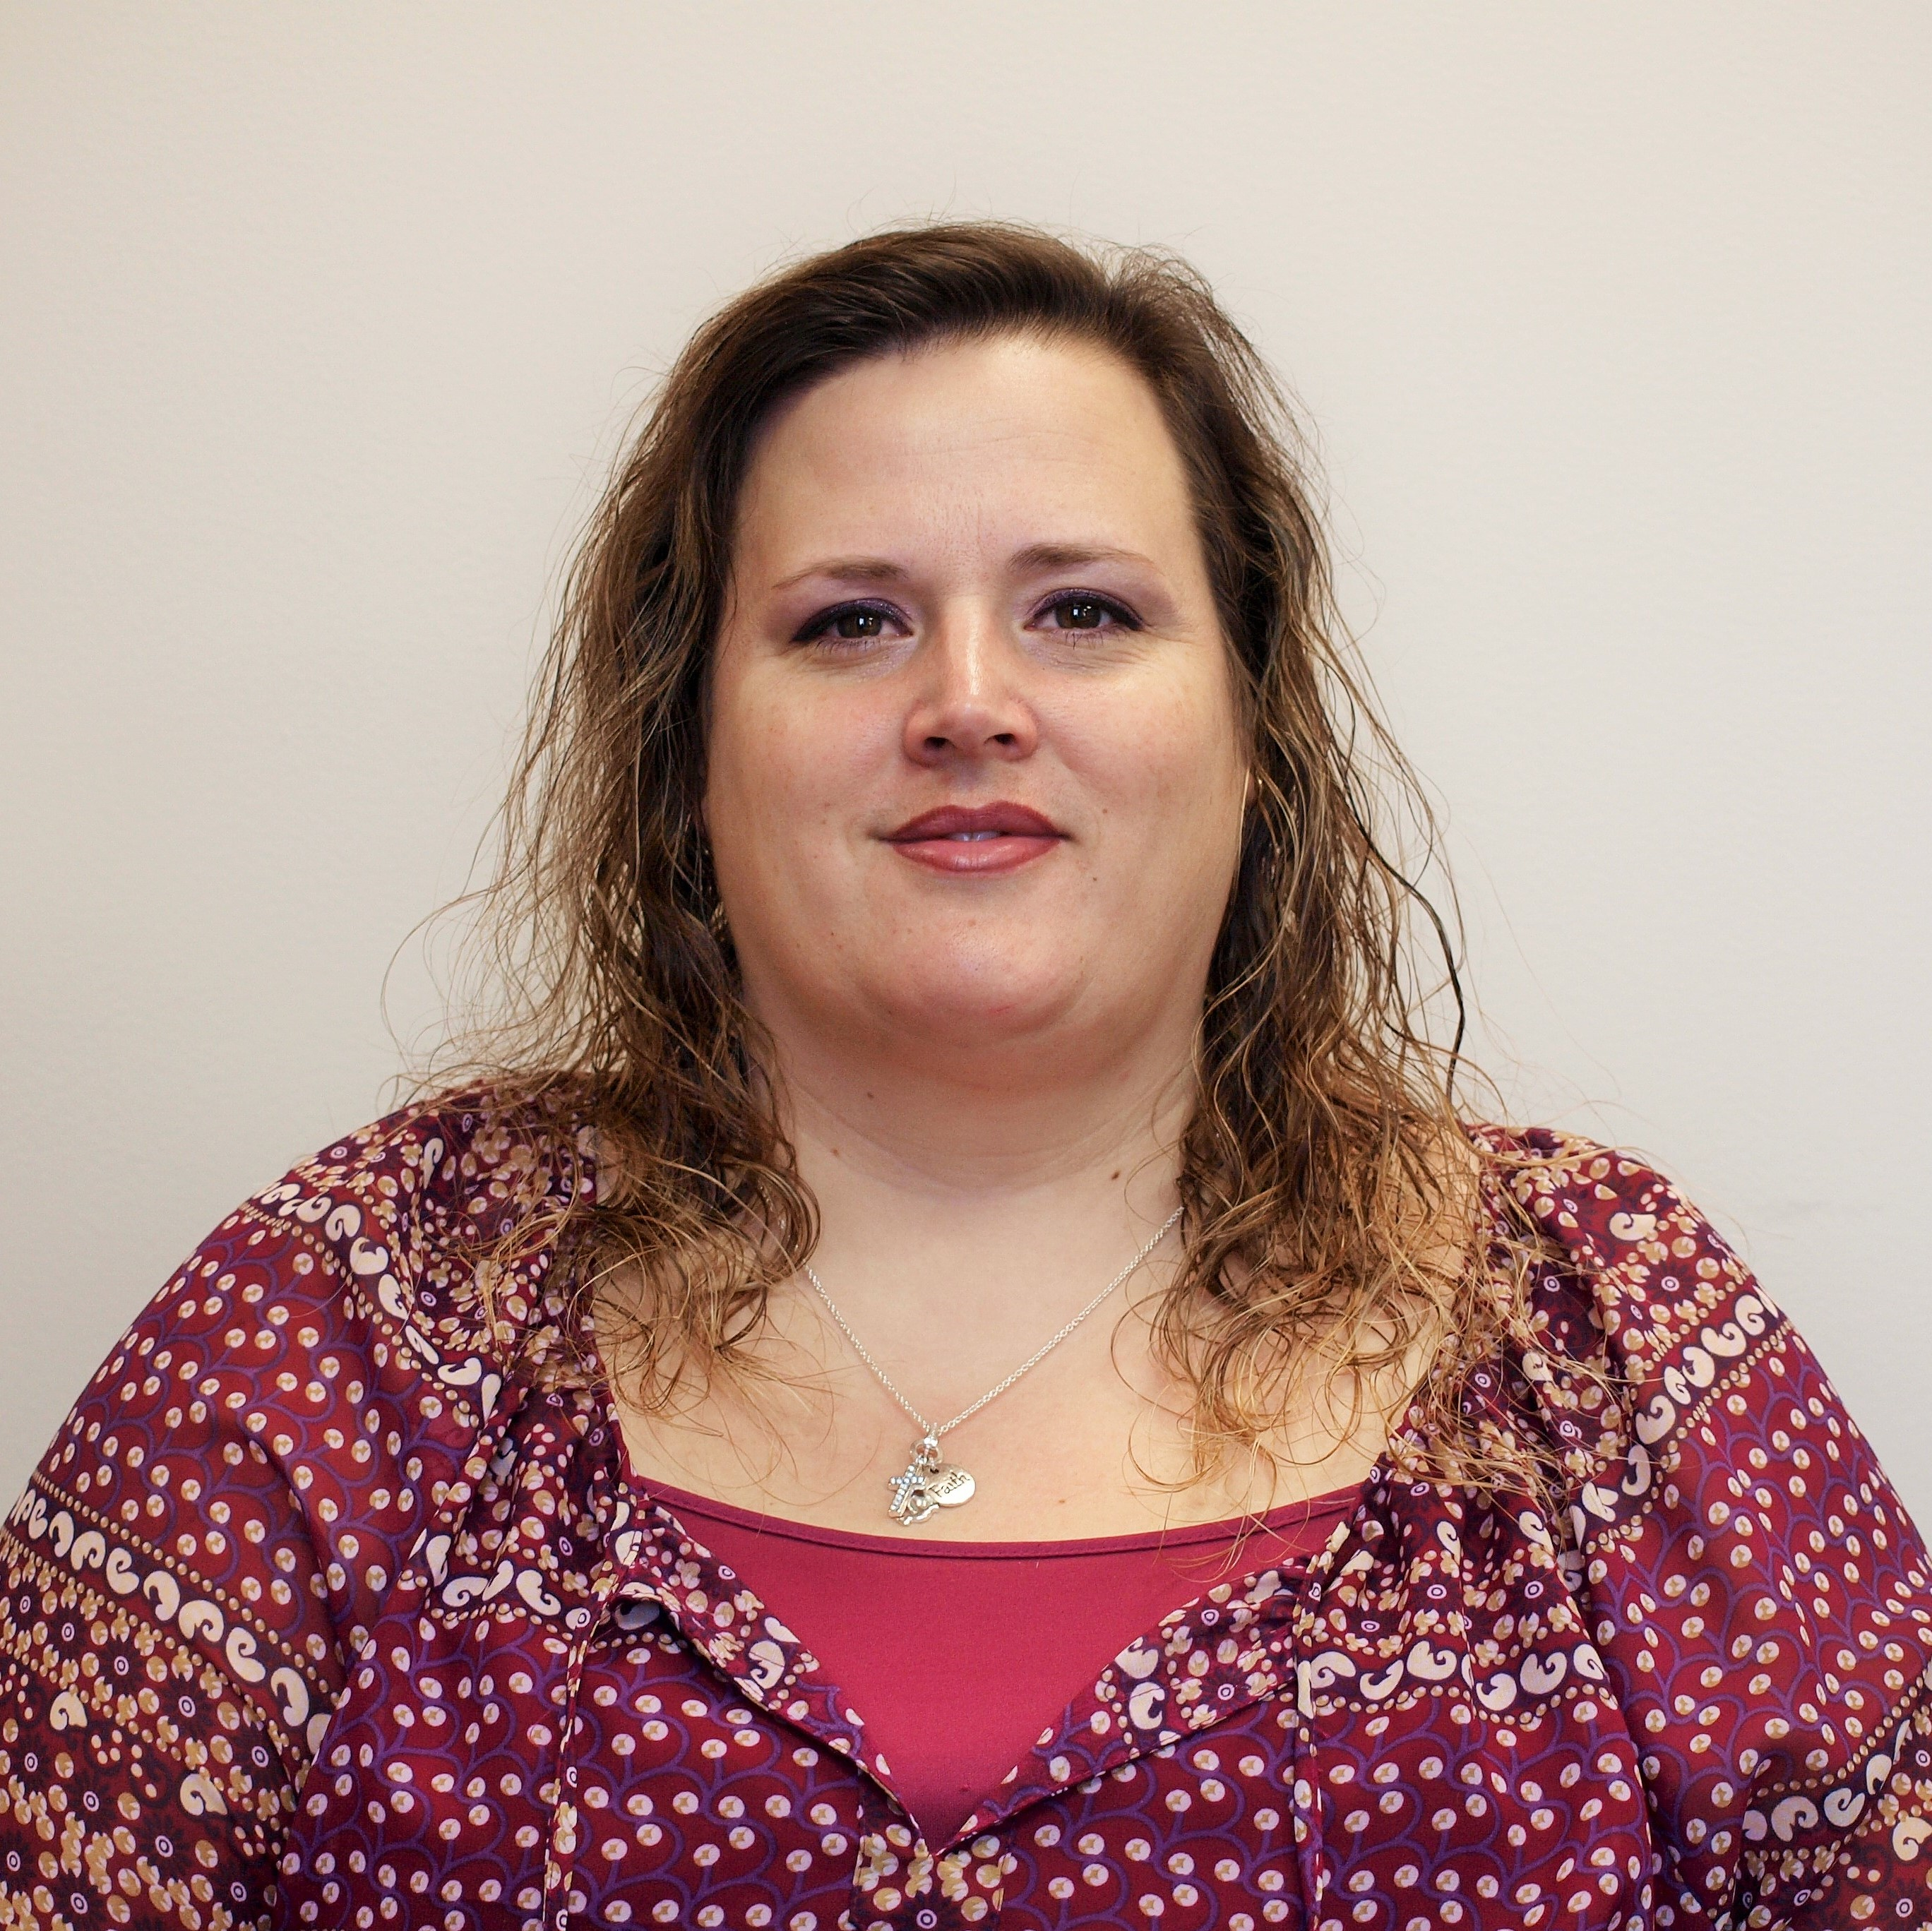 Meet the Team, Staff Spotlight: Jennifer Blanck